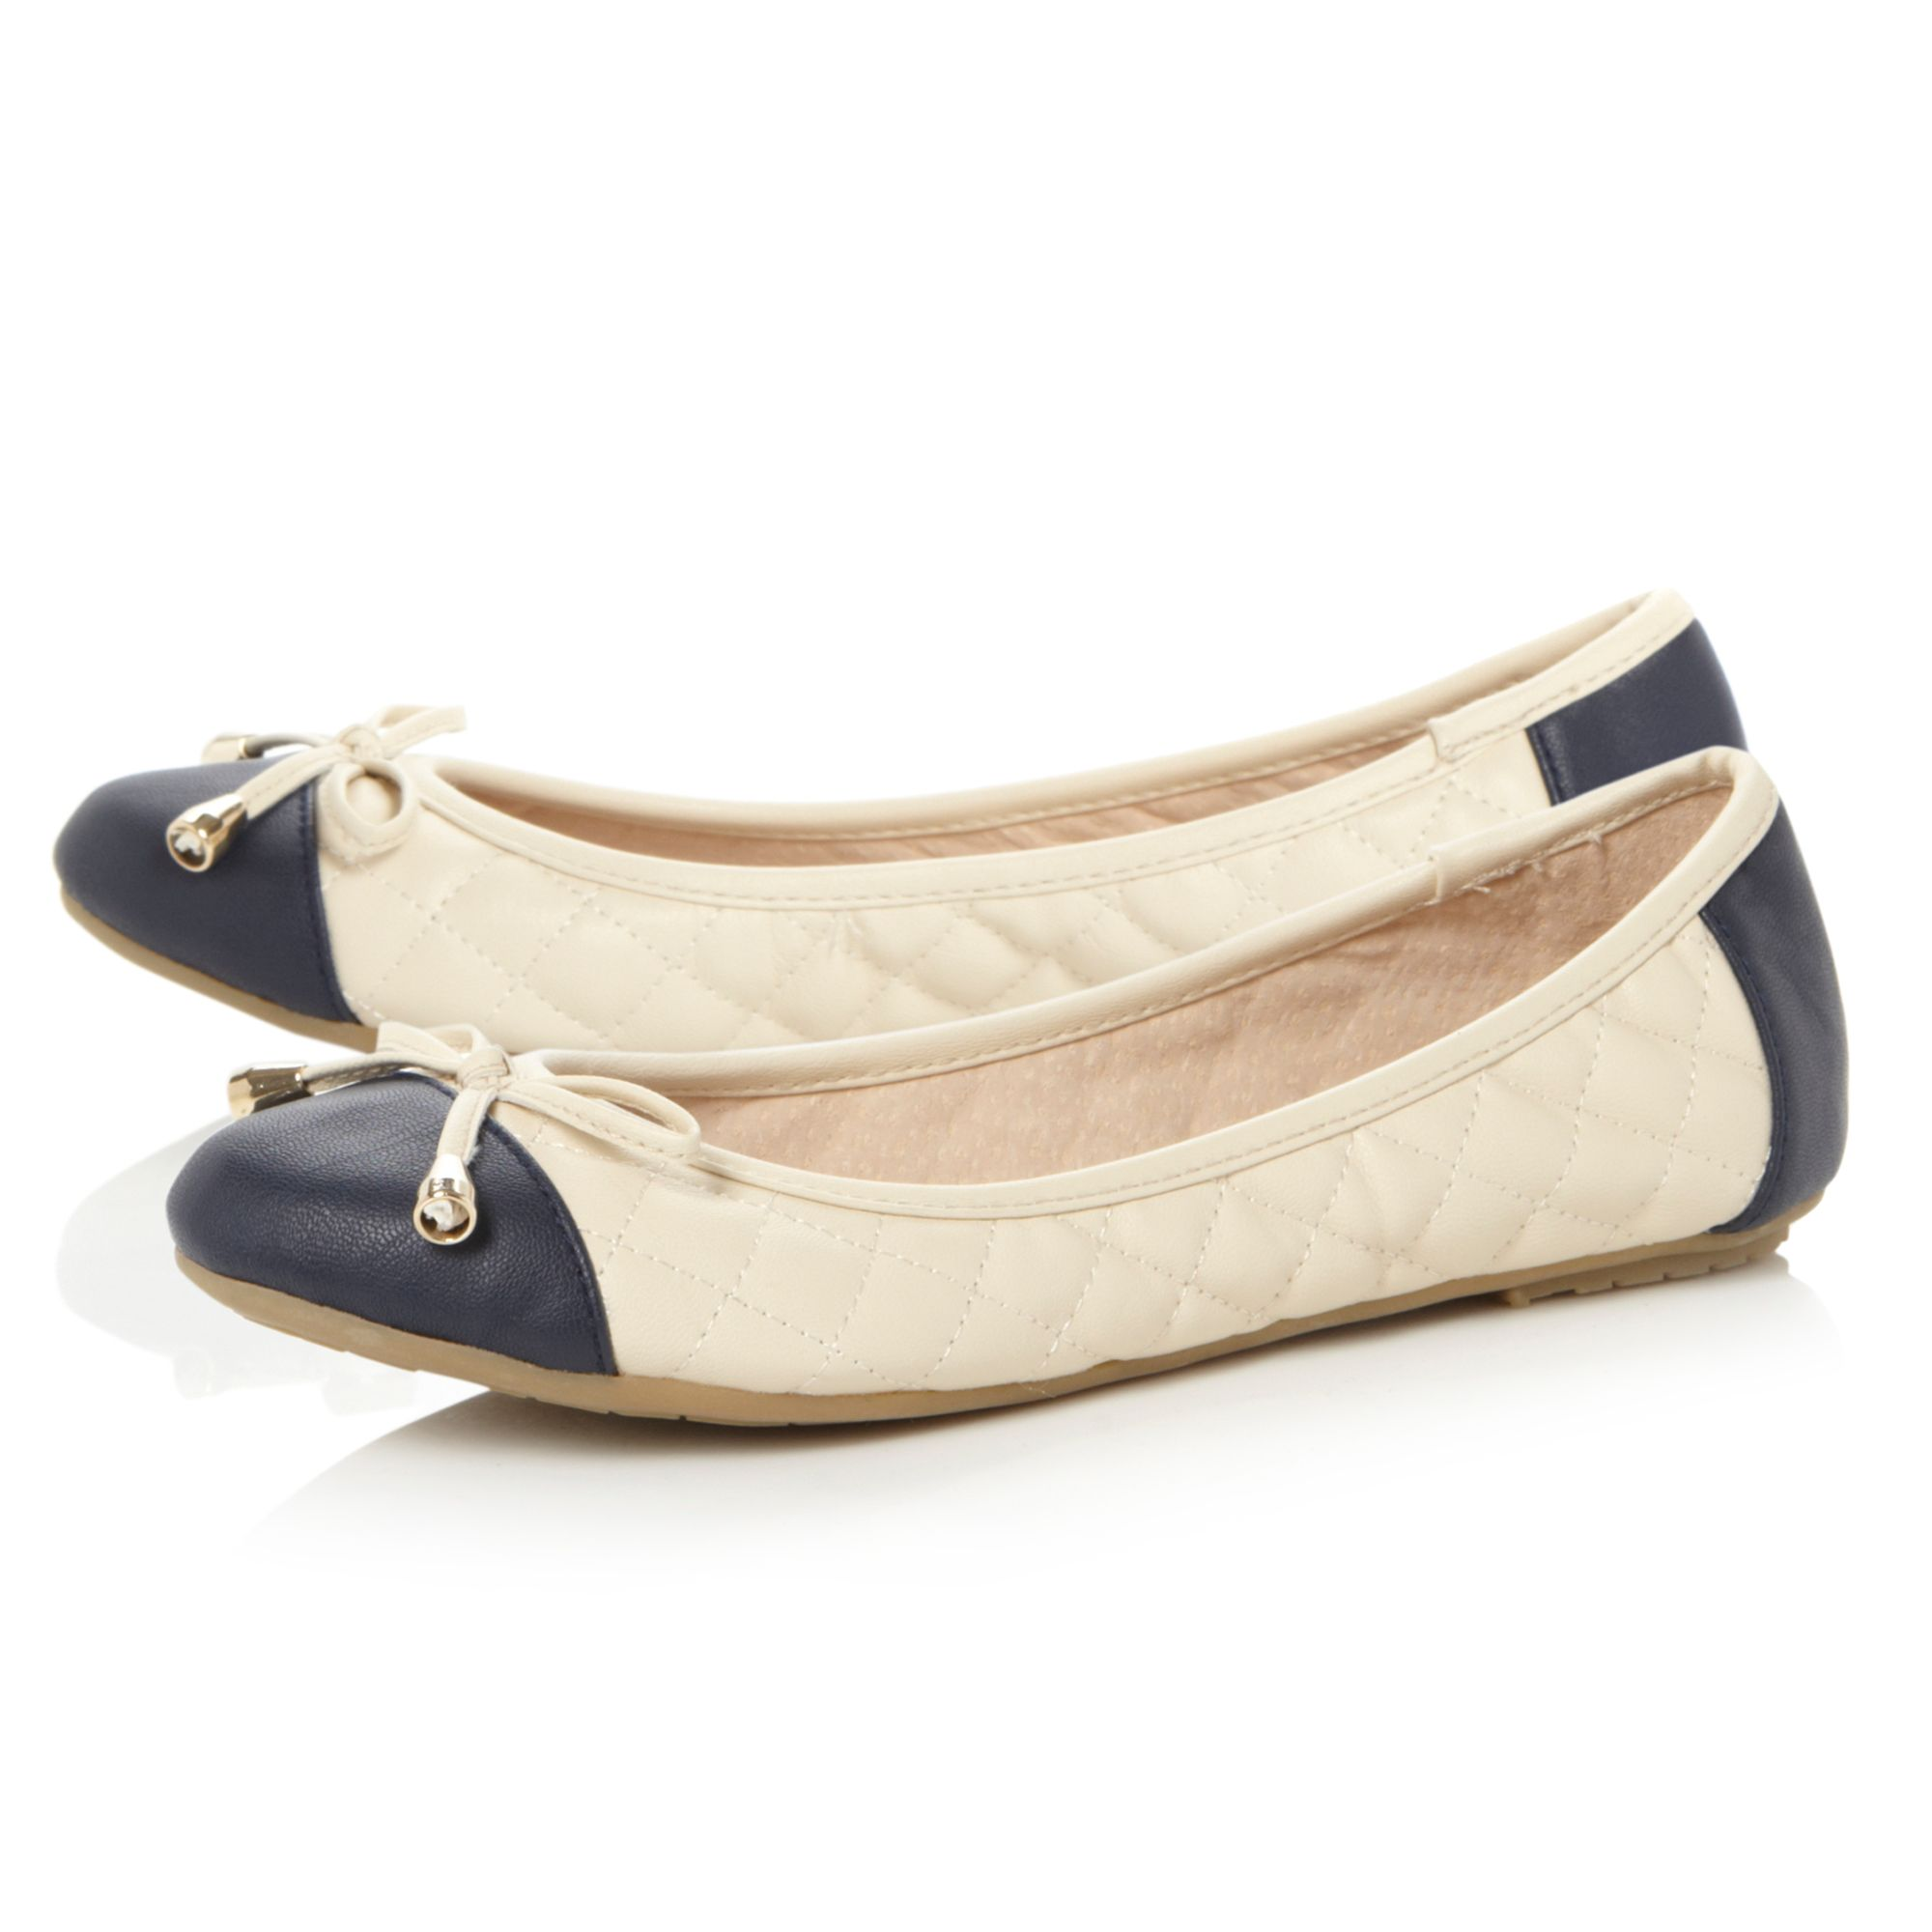 Marbella toe cap quilted upper ballerina shoes